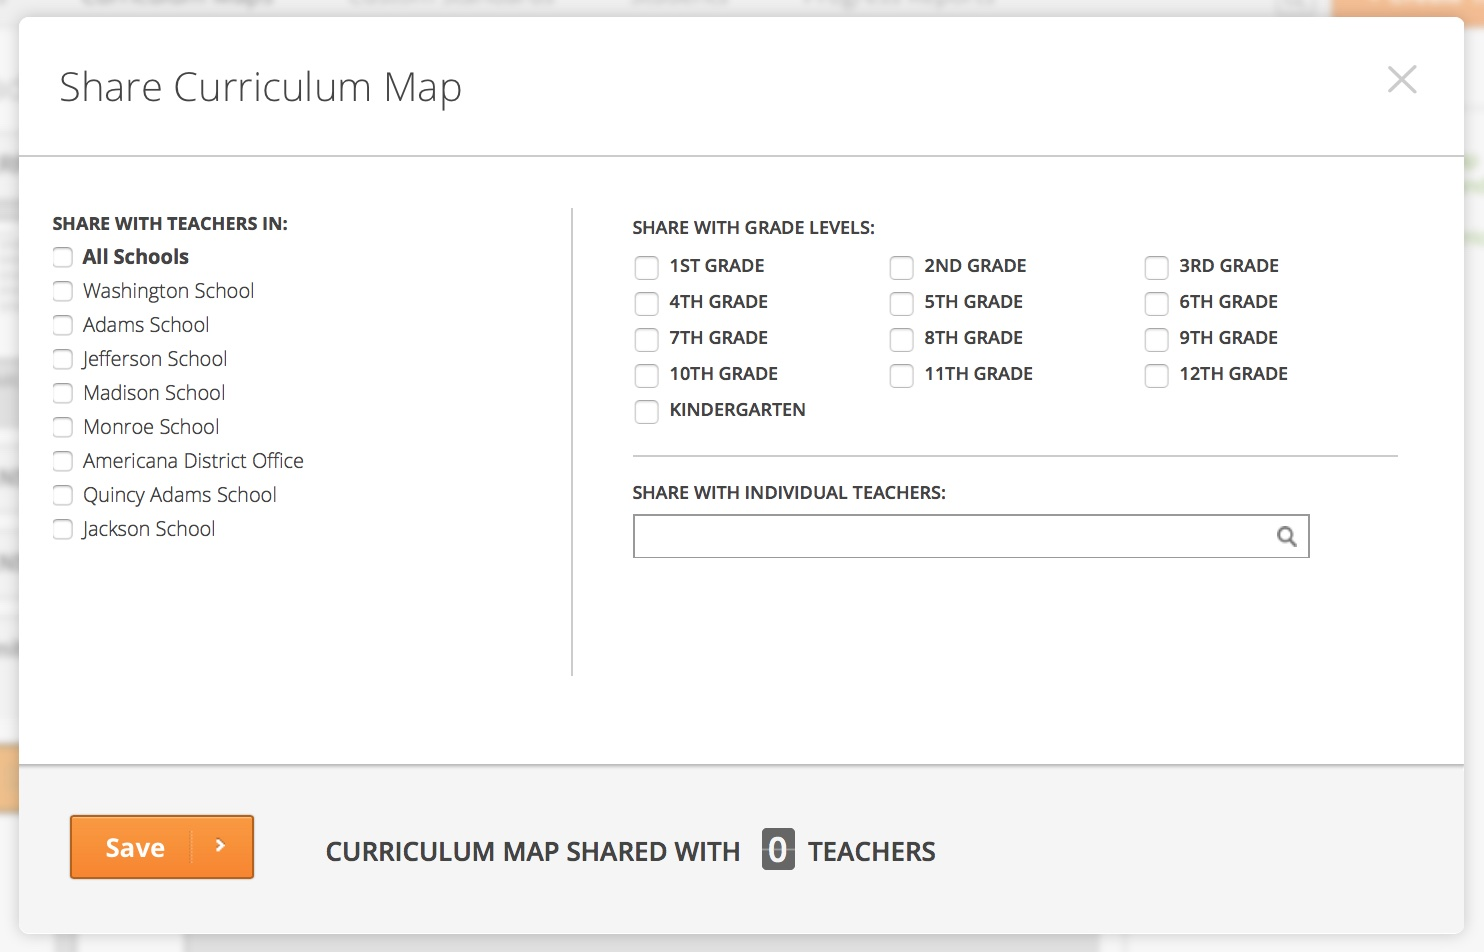 Share Curr Map with Teachers